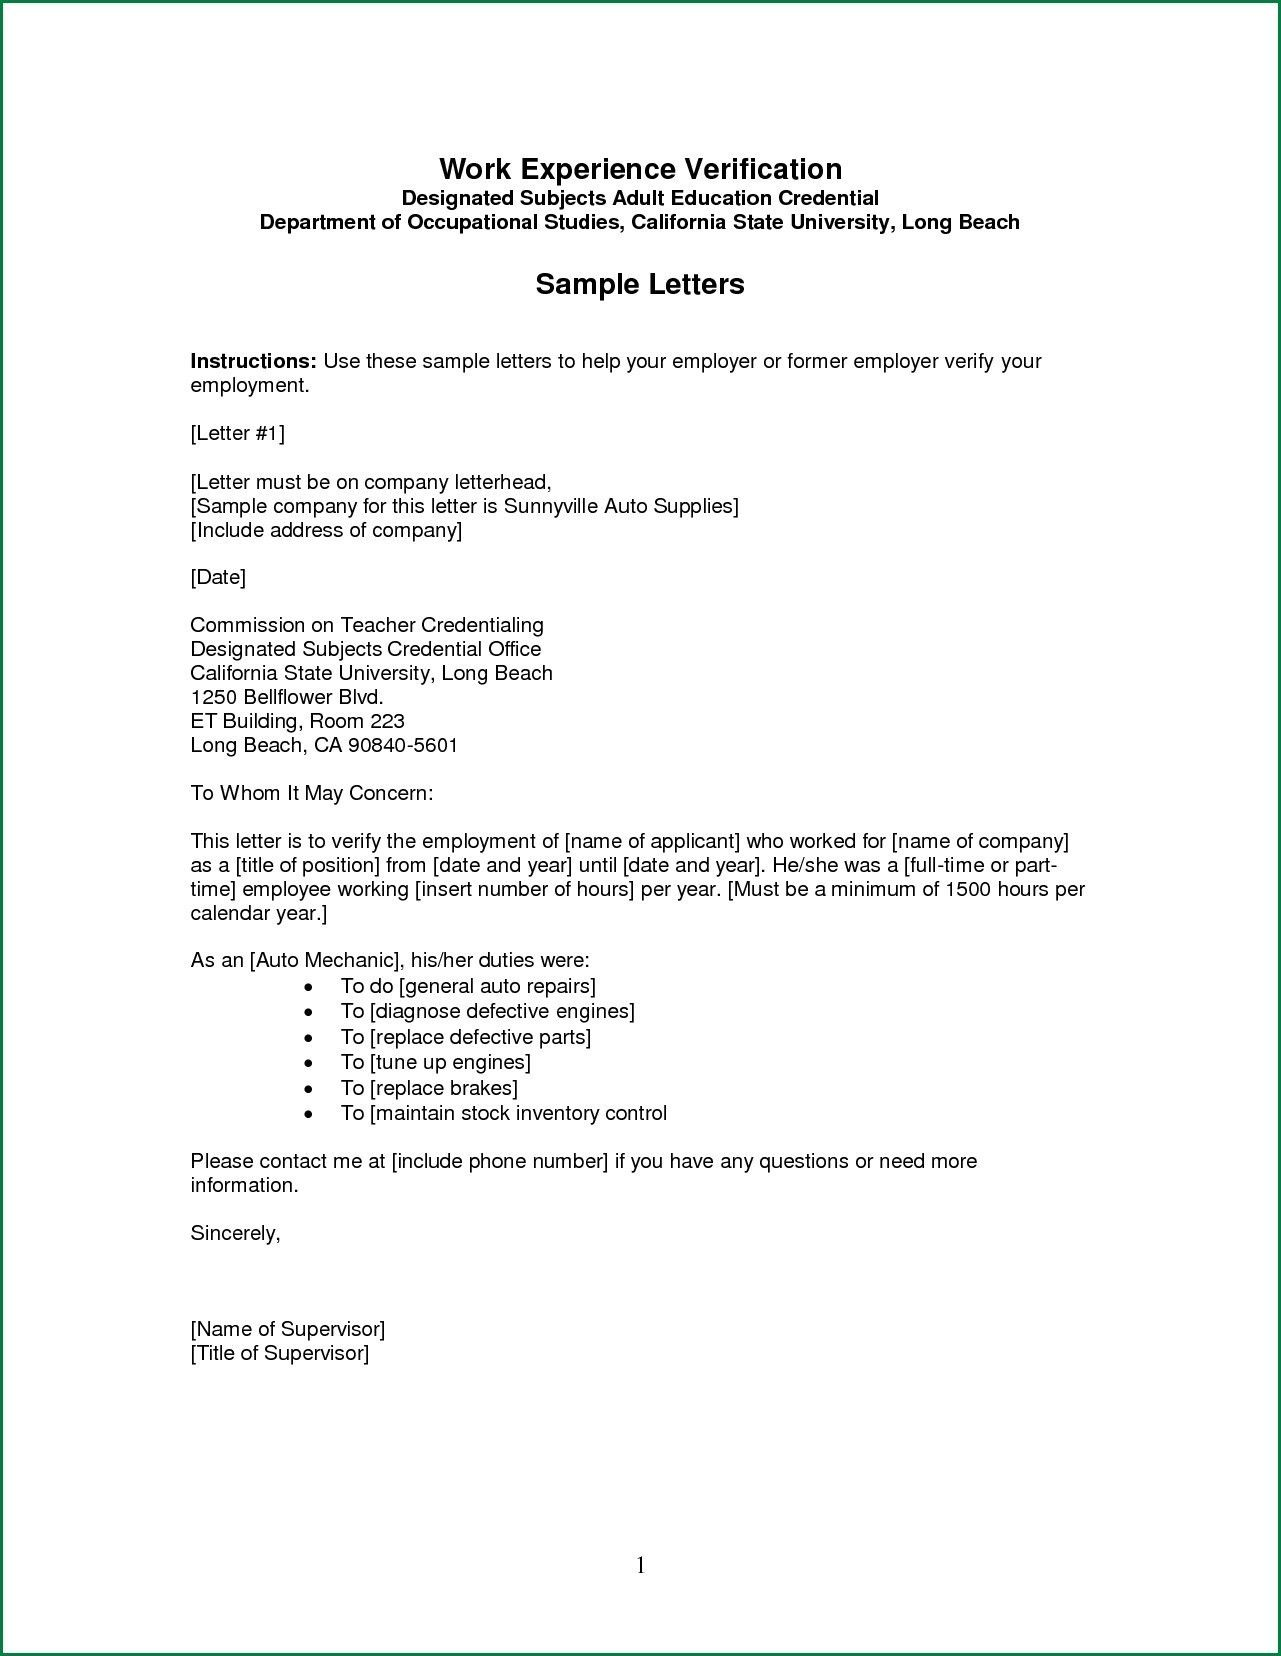 New Job Acceptance Letter Template you can download for